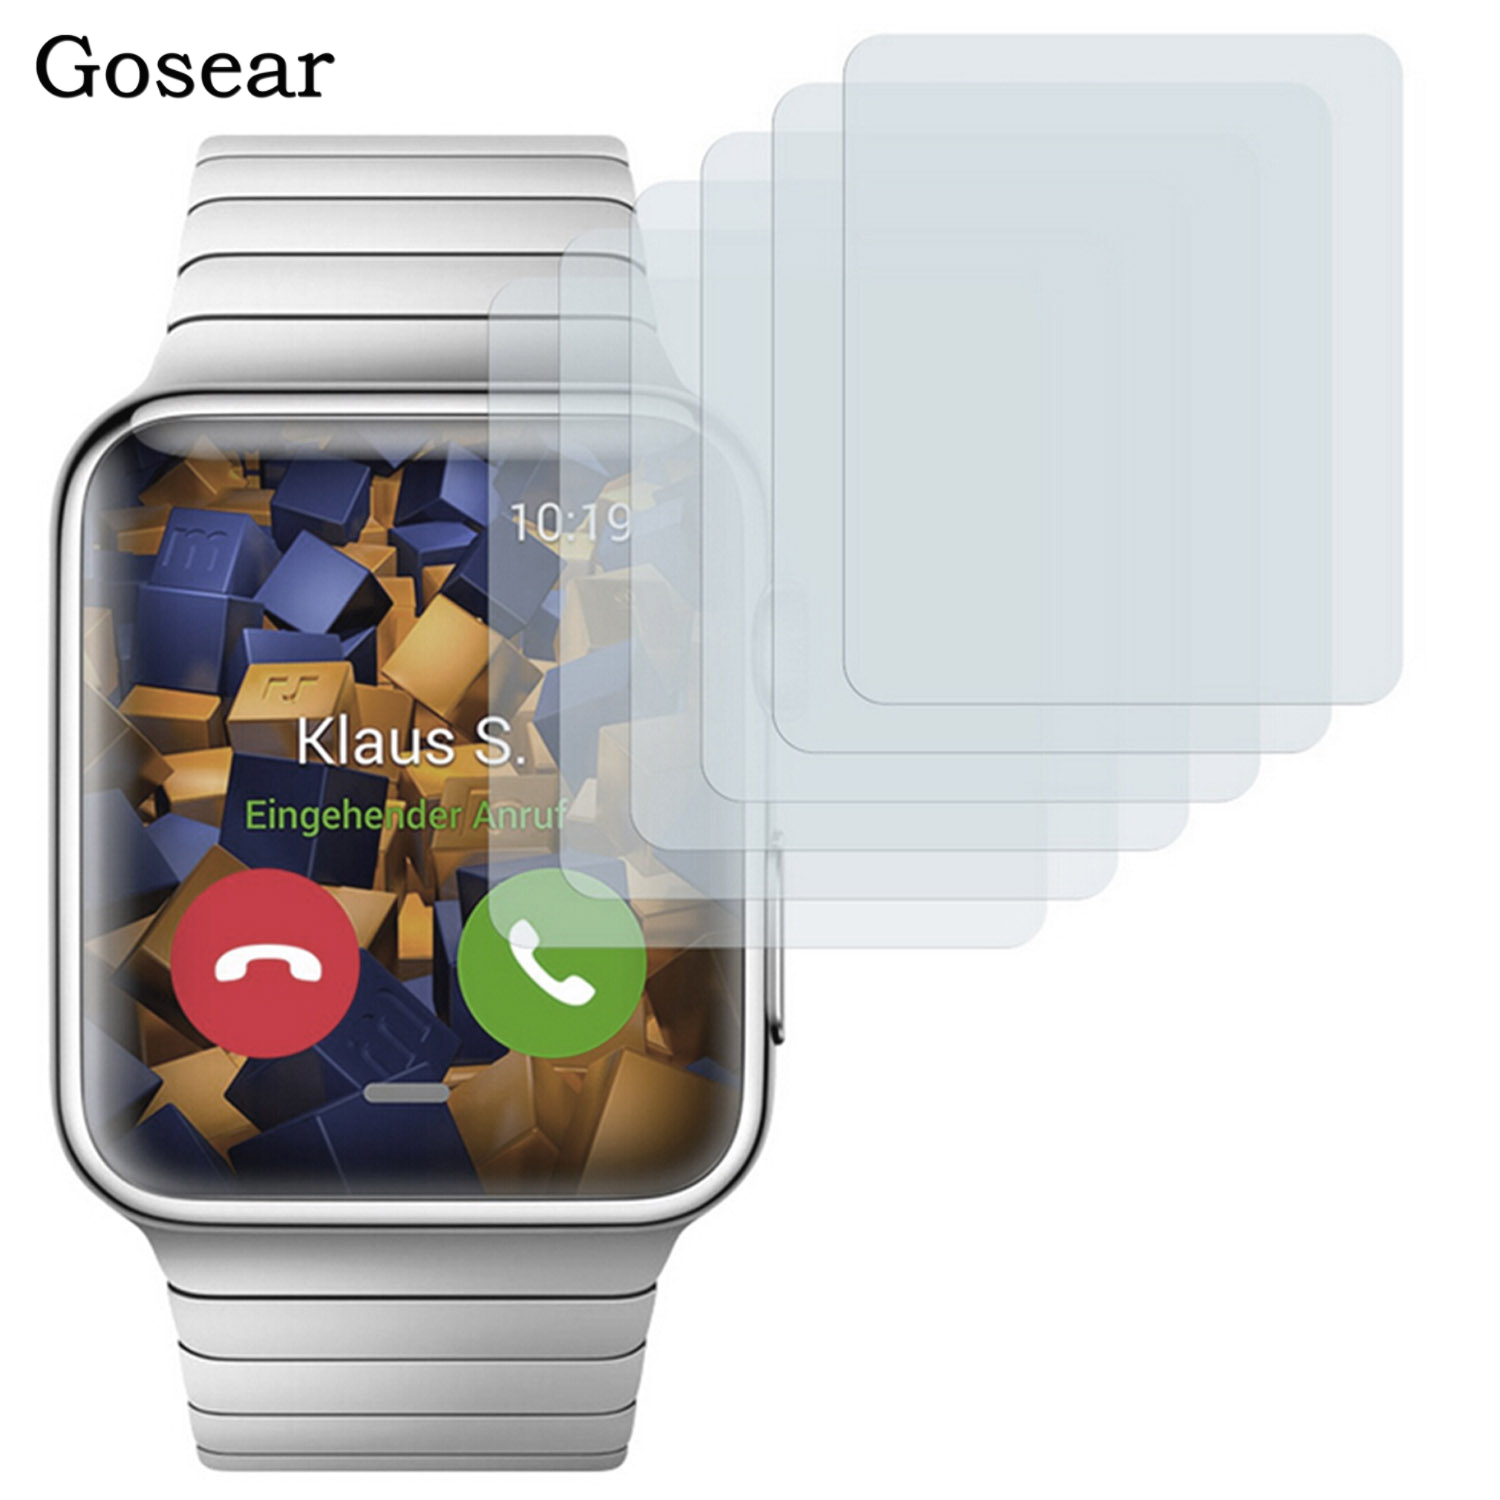 Gosear 5pcs Protective HD Screen Protector Guard Film for Apple Watch iWatch Series 1 I 38mm 42mm Accessories